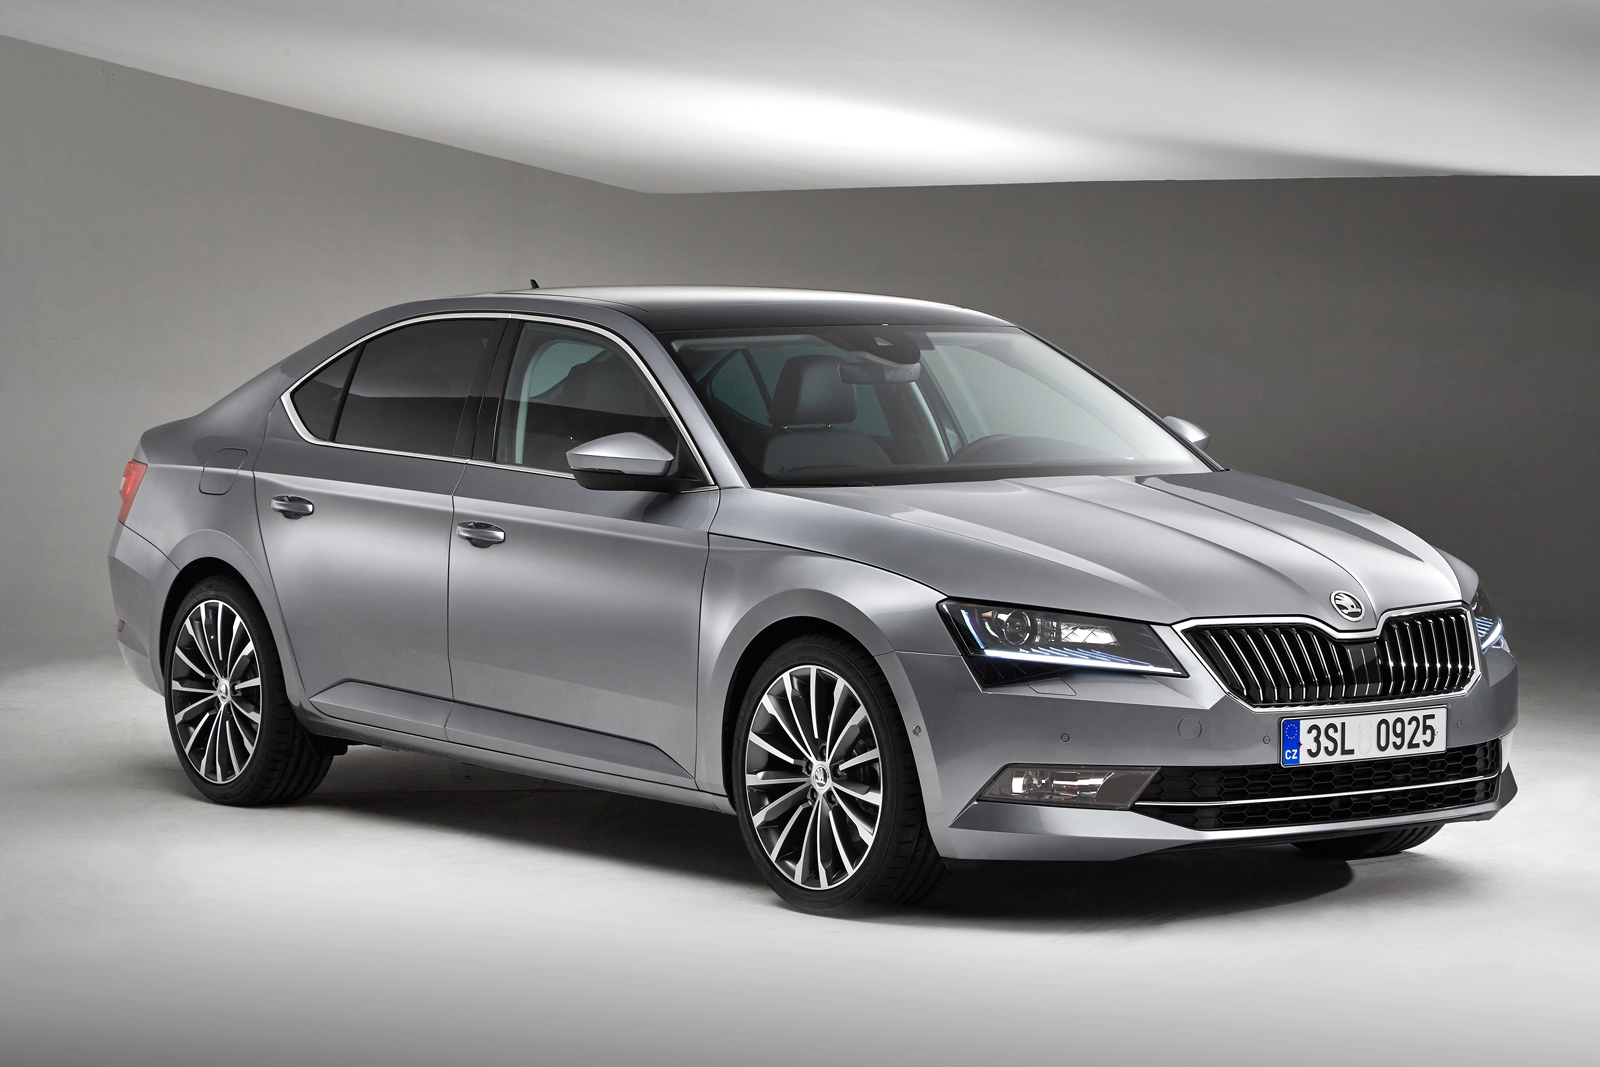 Skoda Superb 2015 - floteauto 4